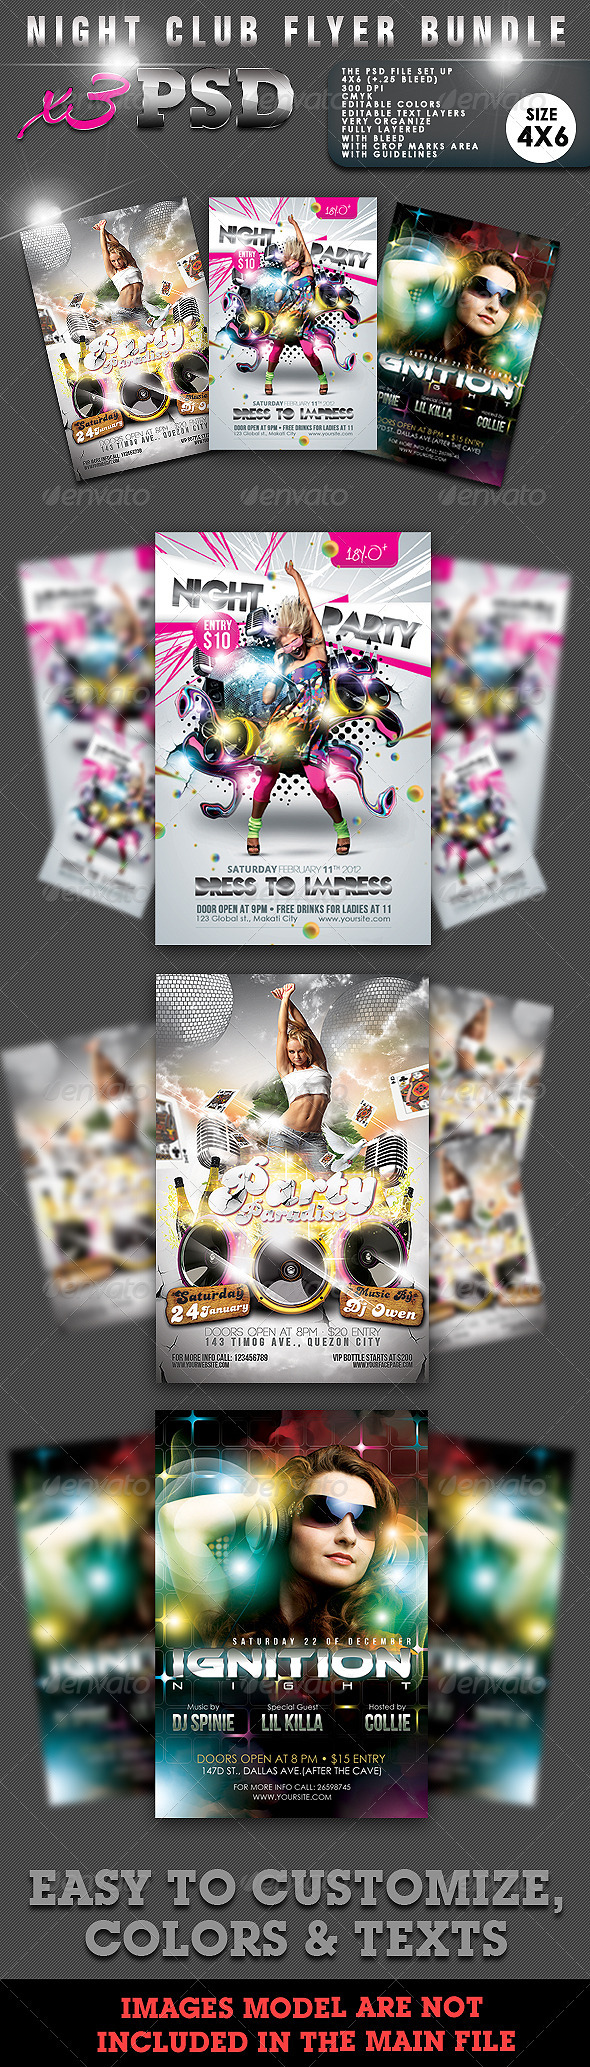 GraphicRiver Night Club Flyer Bundle #02 1530635